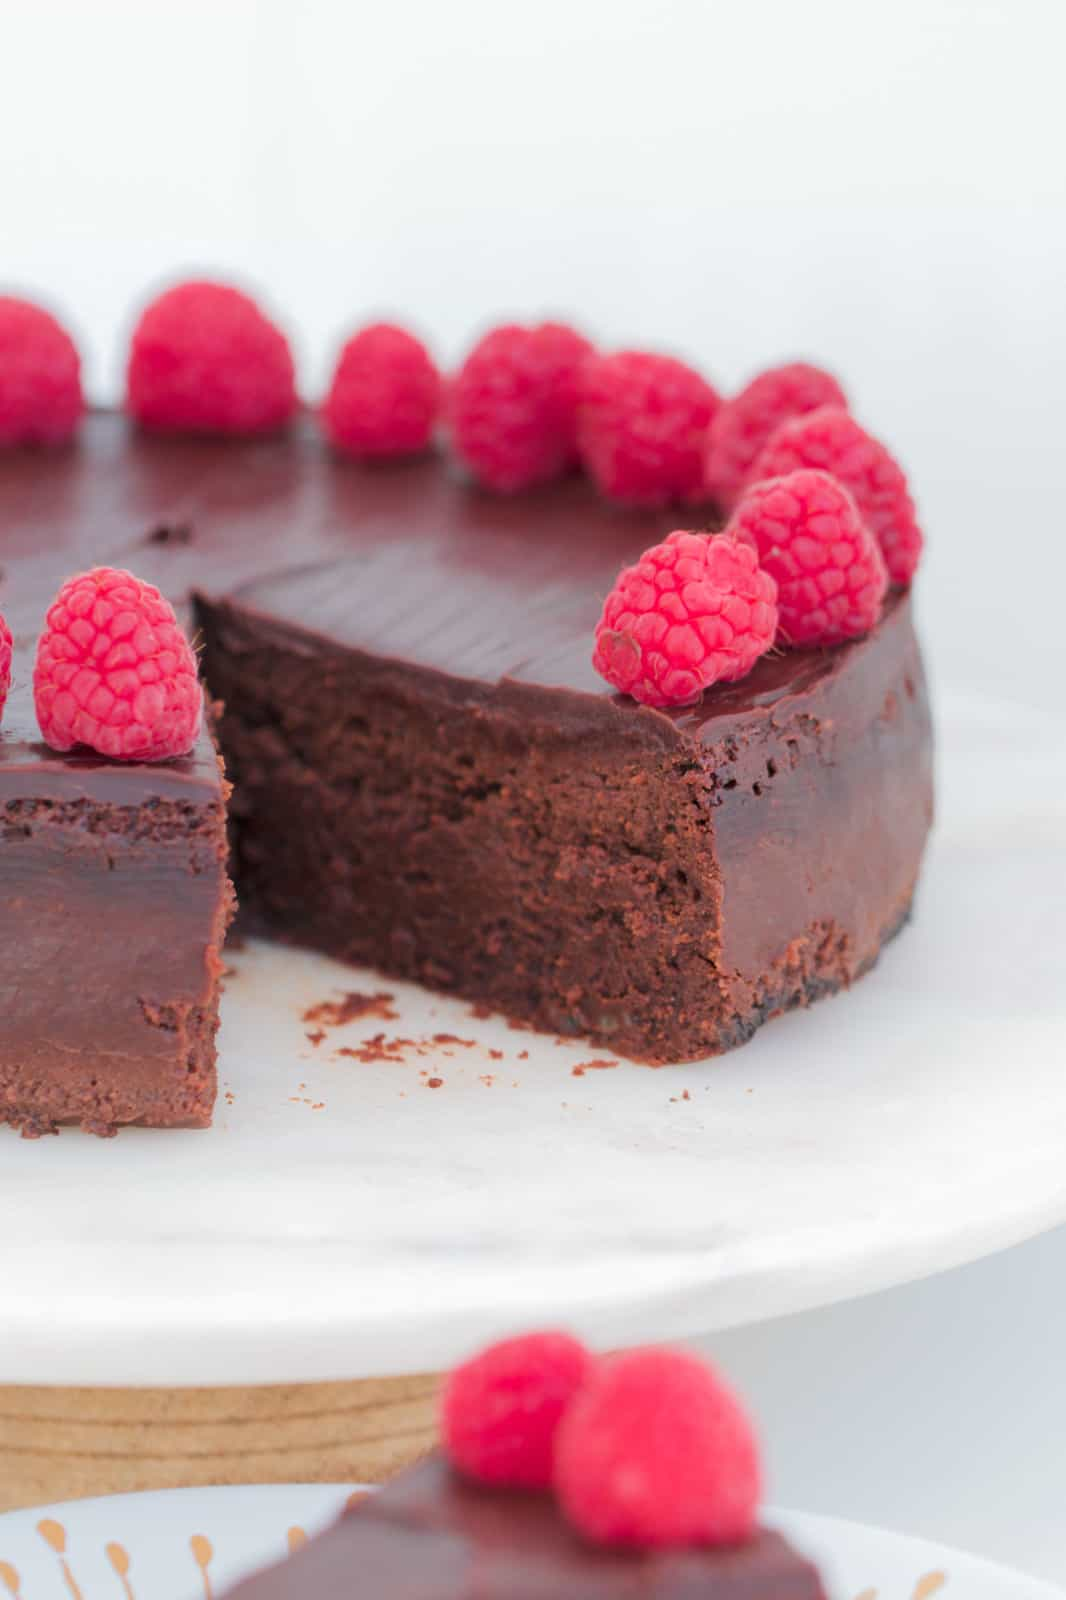 A round chocolate dessert cake decorated with raspberries and ganache. One slice has been one removed showing cake texture.